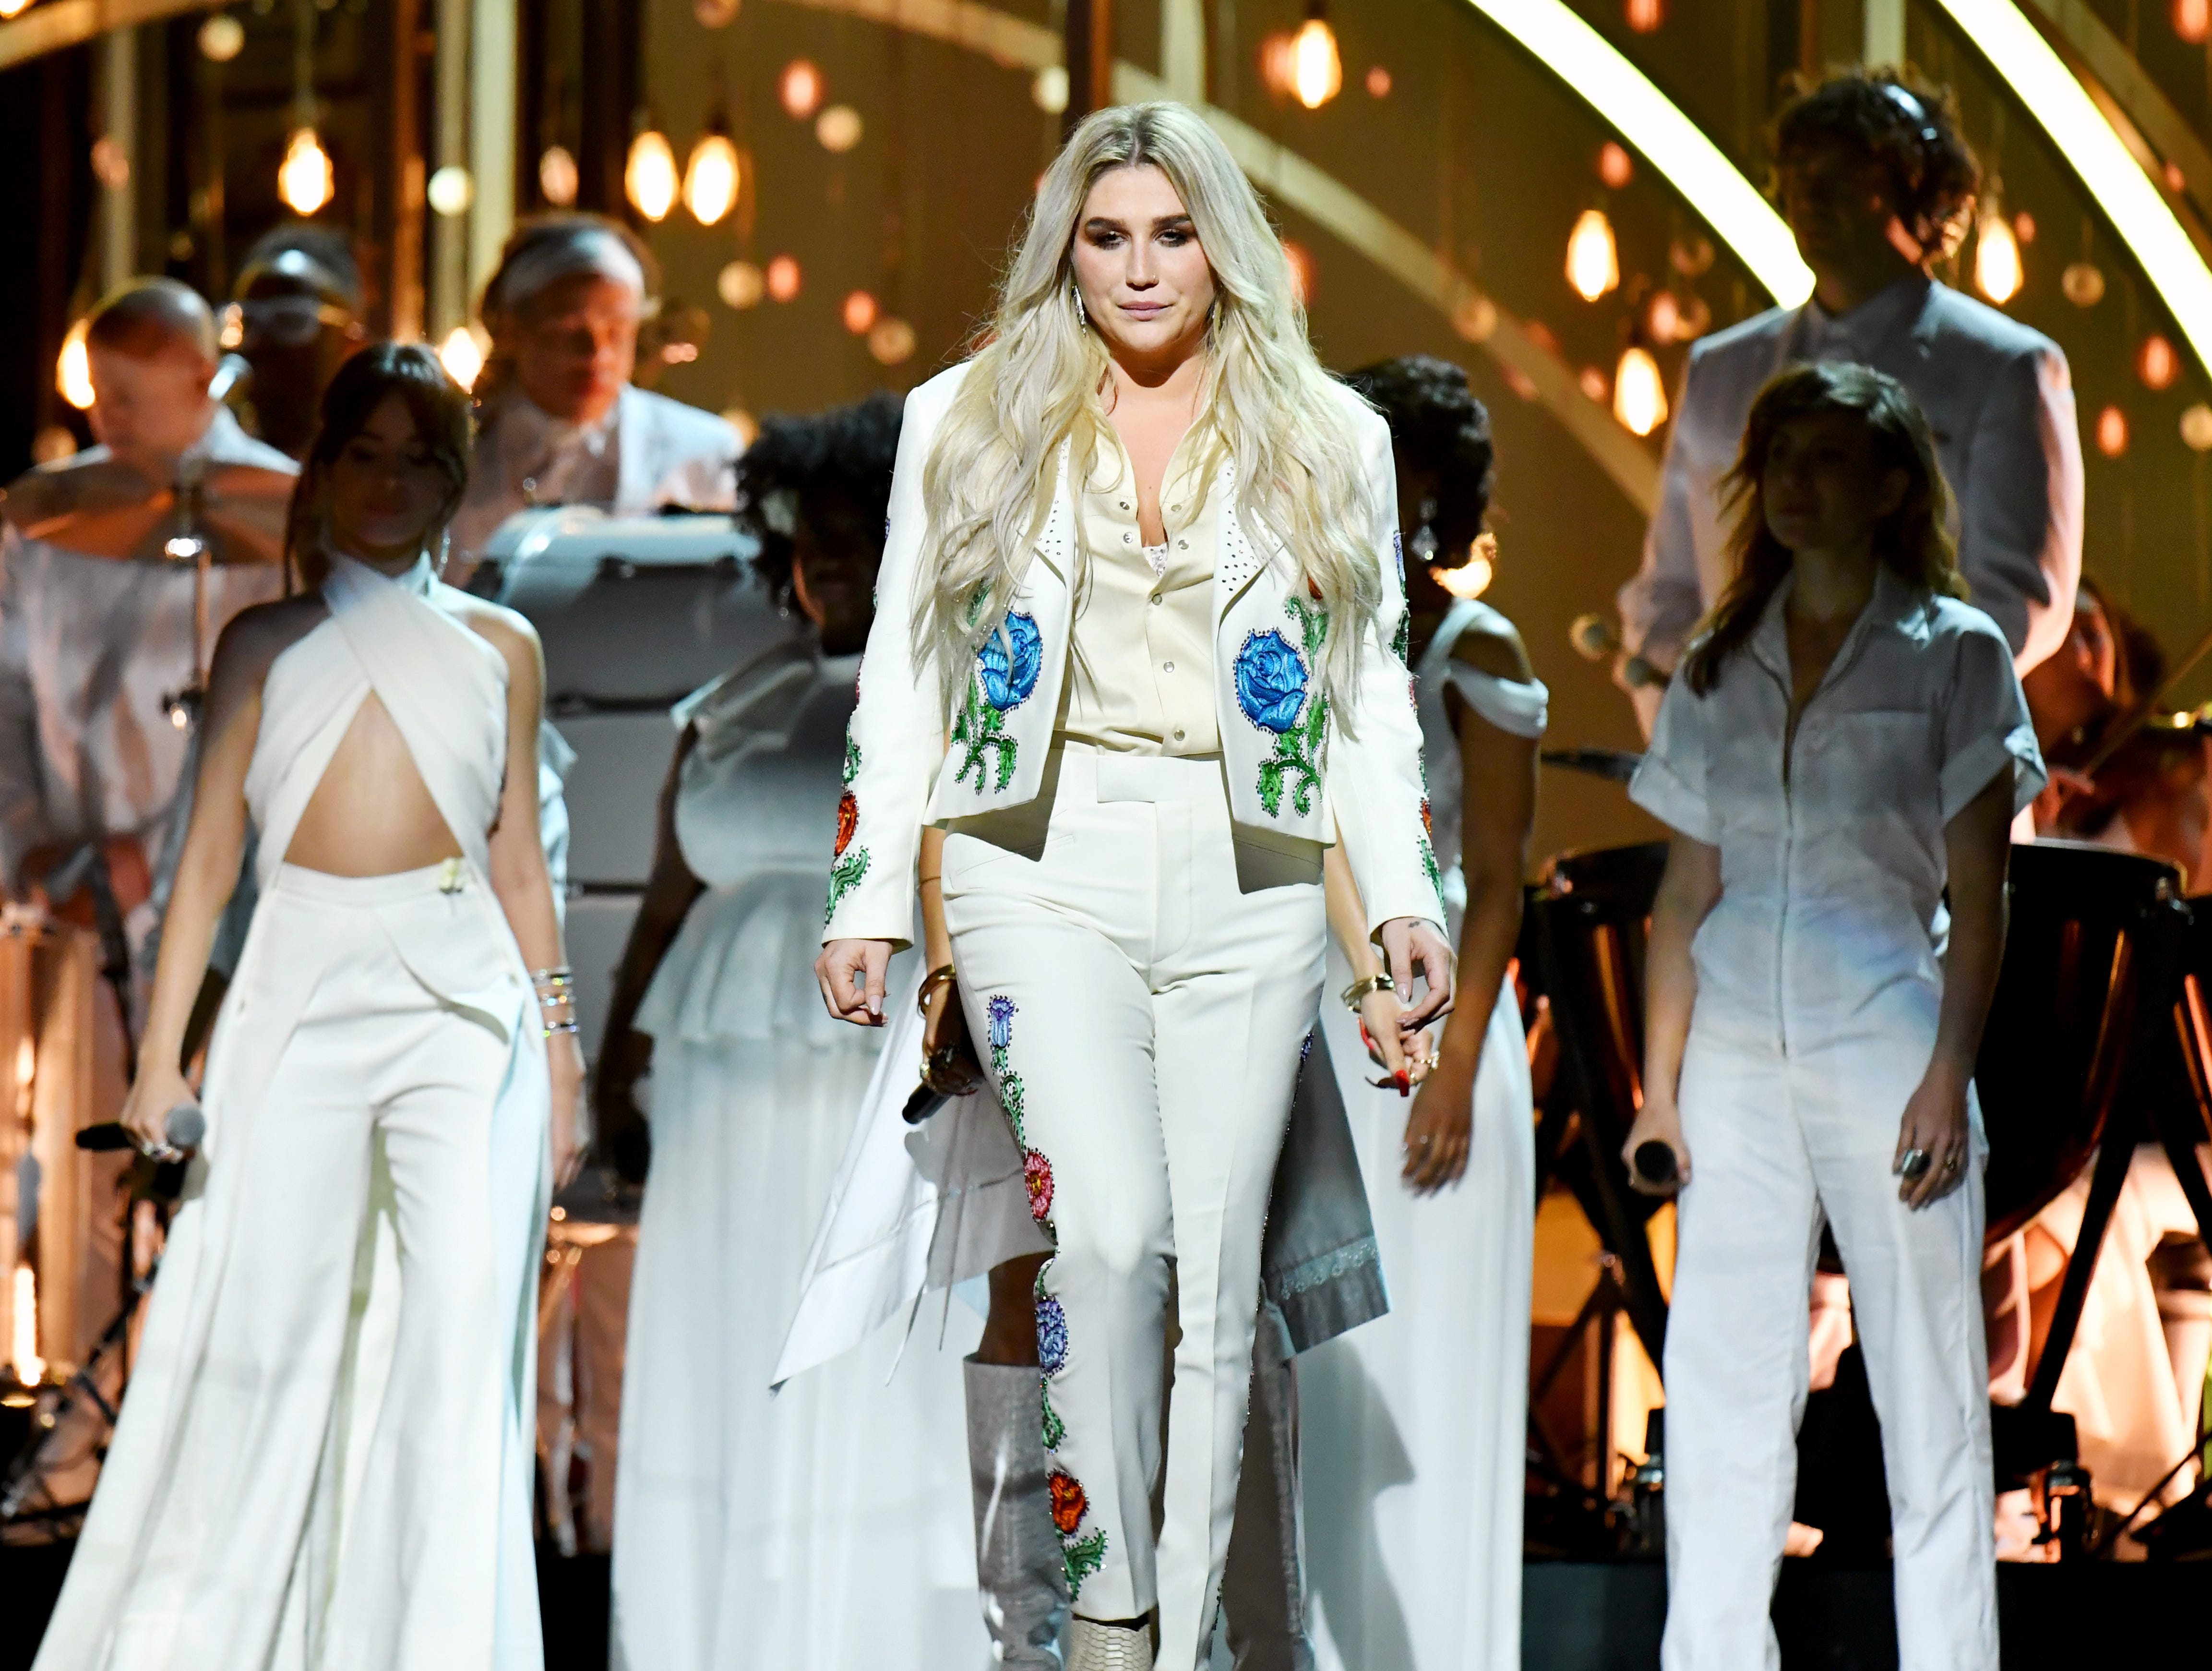 Jan. 28: Kesha gives a powerful performance onstage at the Grammys.